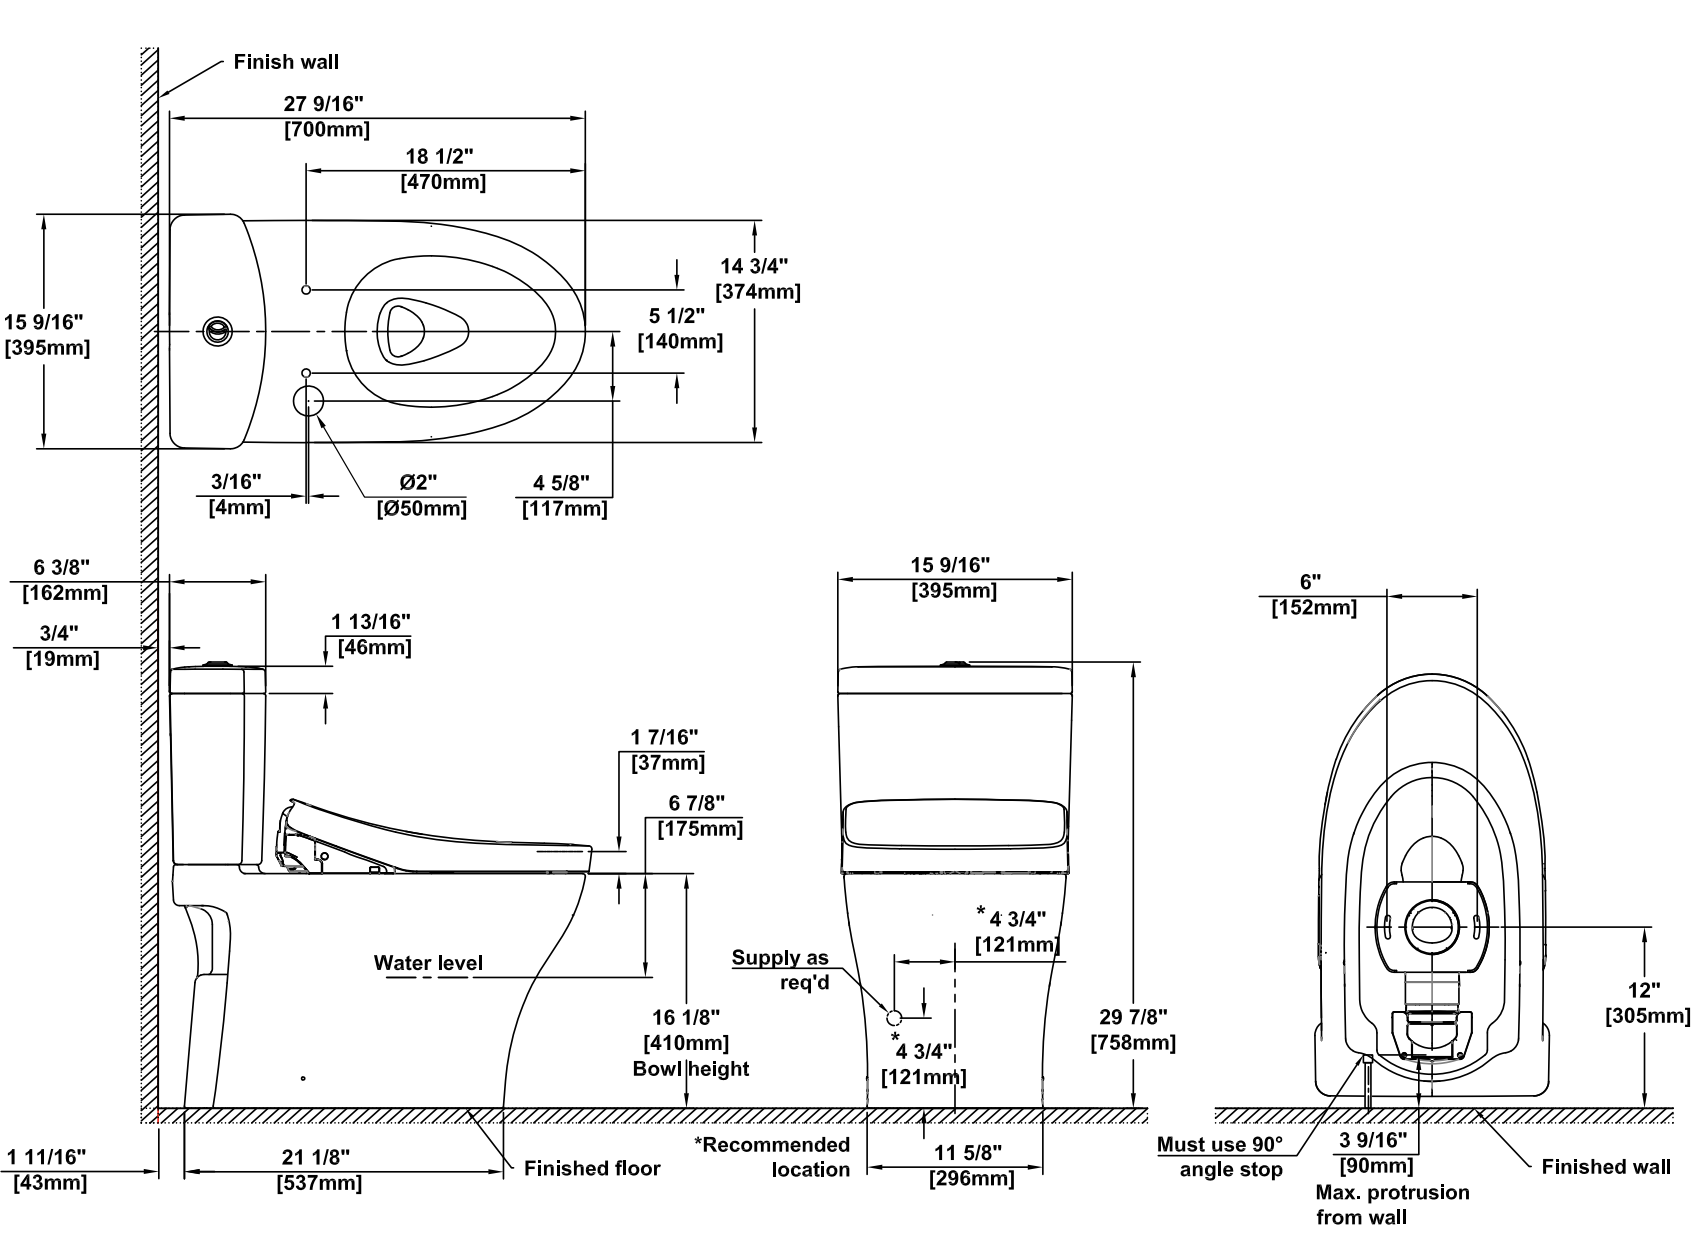 aquia-iv-1g-washlet-s550e-universal-height-two-piece-toilet-1.0-gpf-and-0.8-gpf-diagram.png